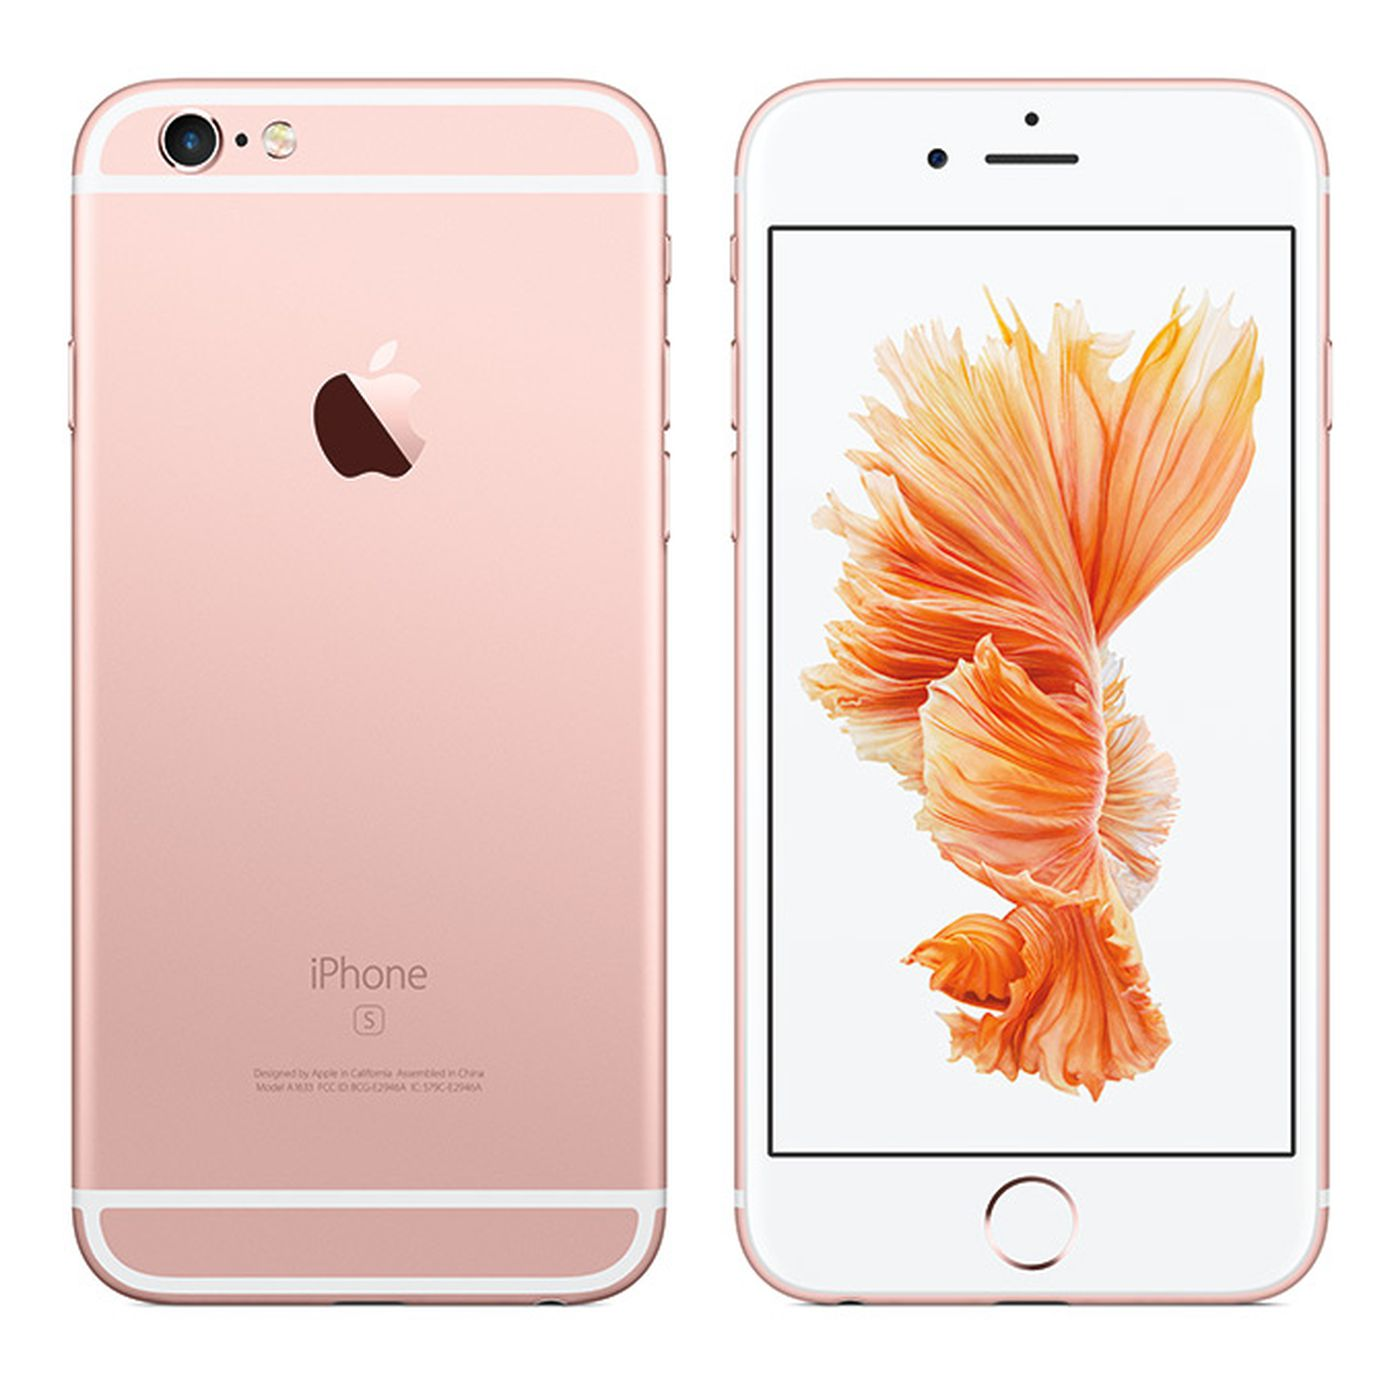 The pink iPhone is here | The Verge